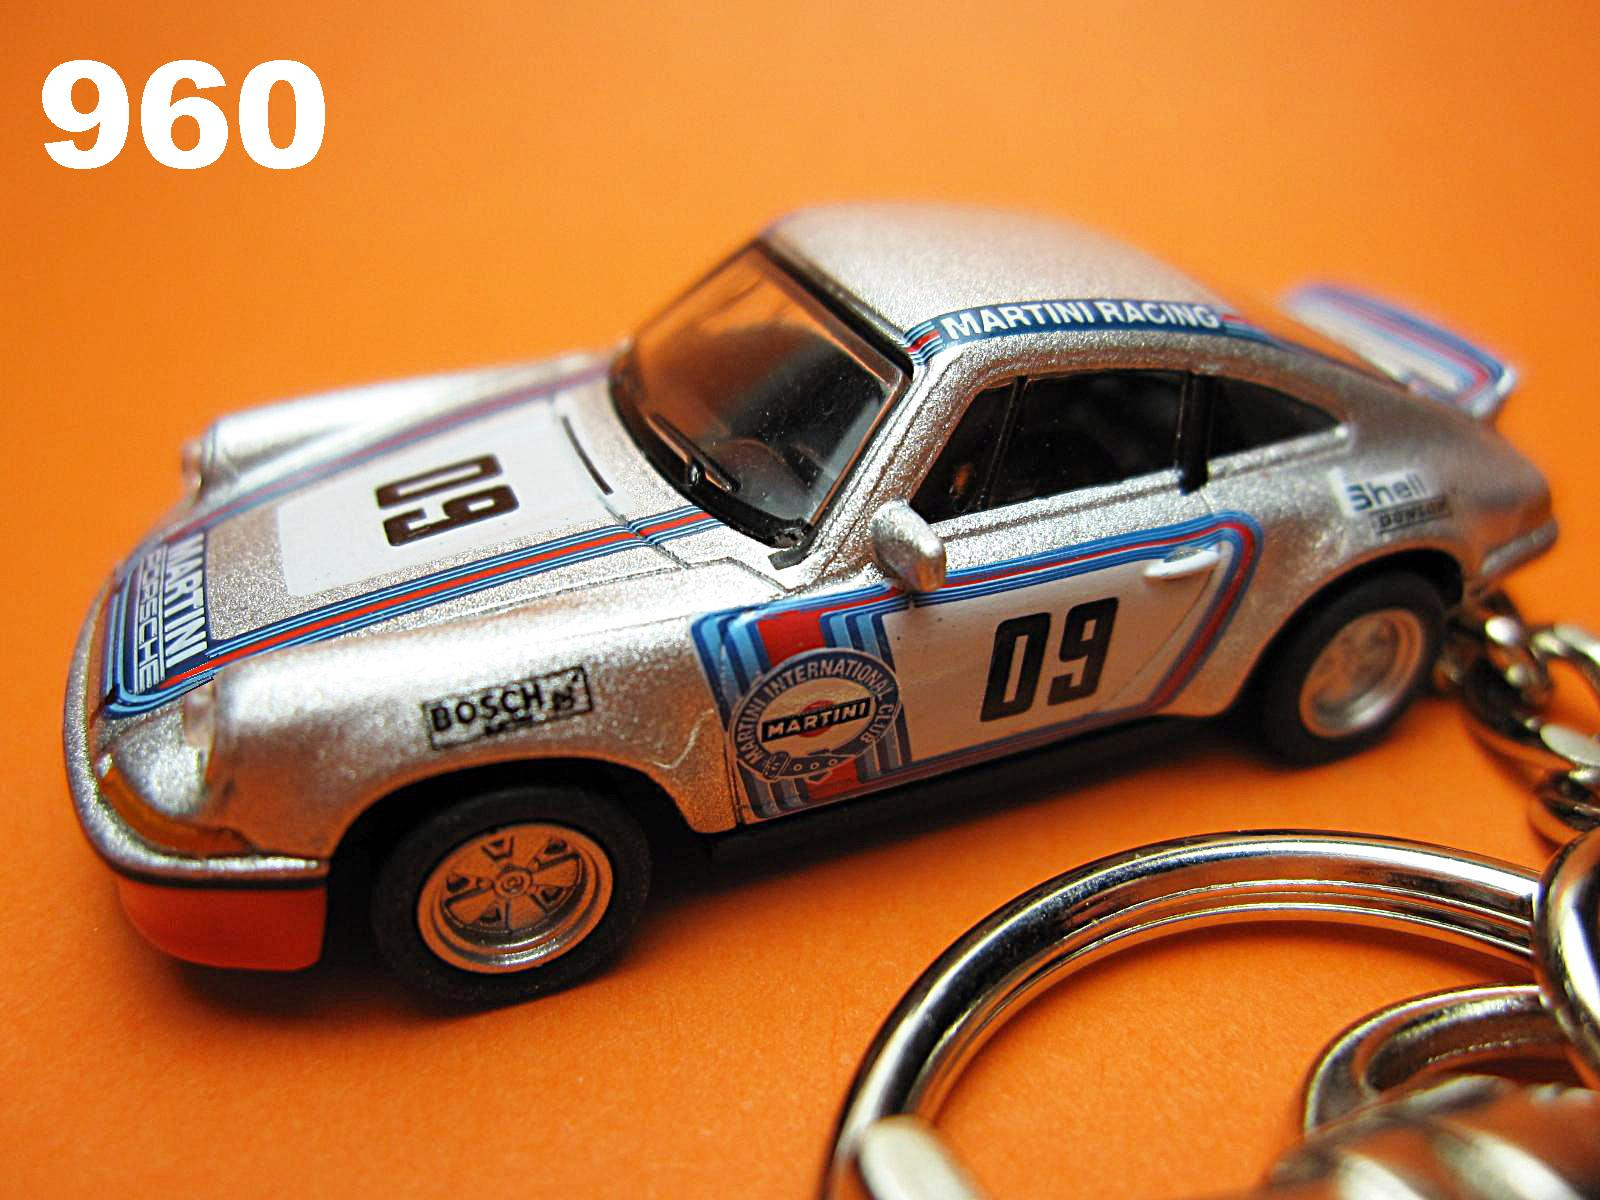 Porsche 911 RS Martini Racing #09 (Silver) Die-cast Key Chain